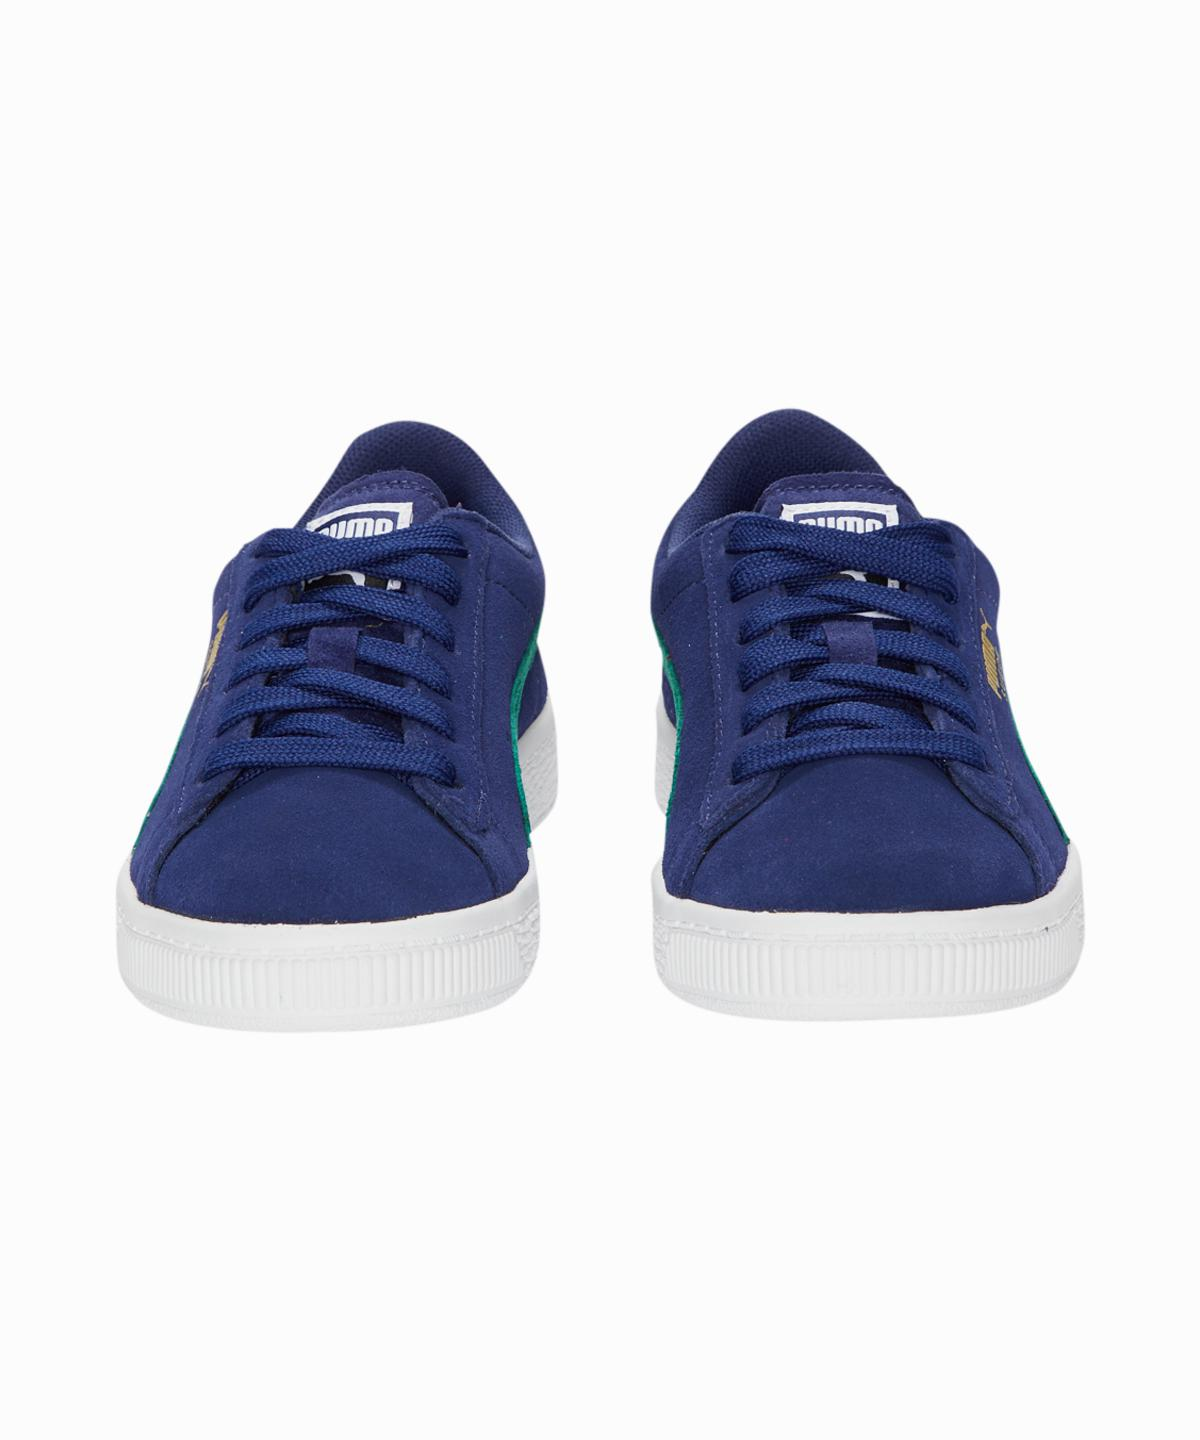 PS Navy Suede Sneakers